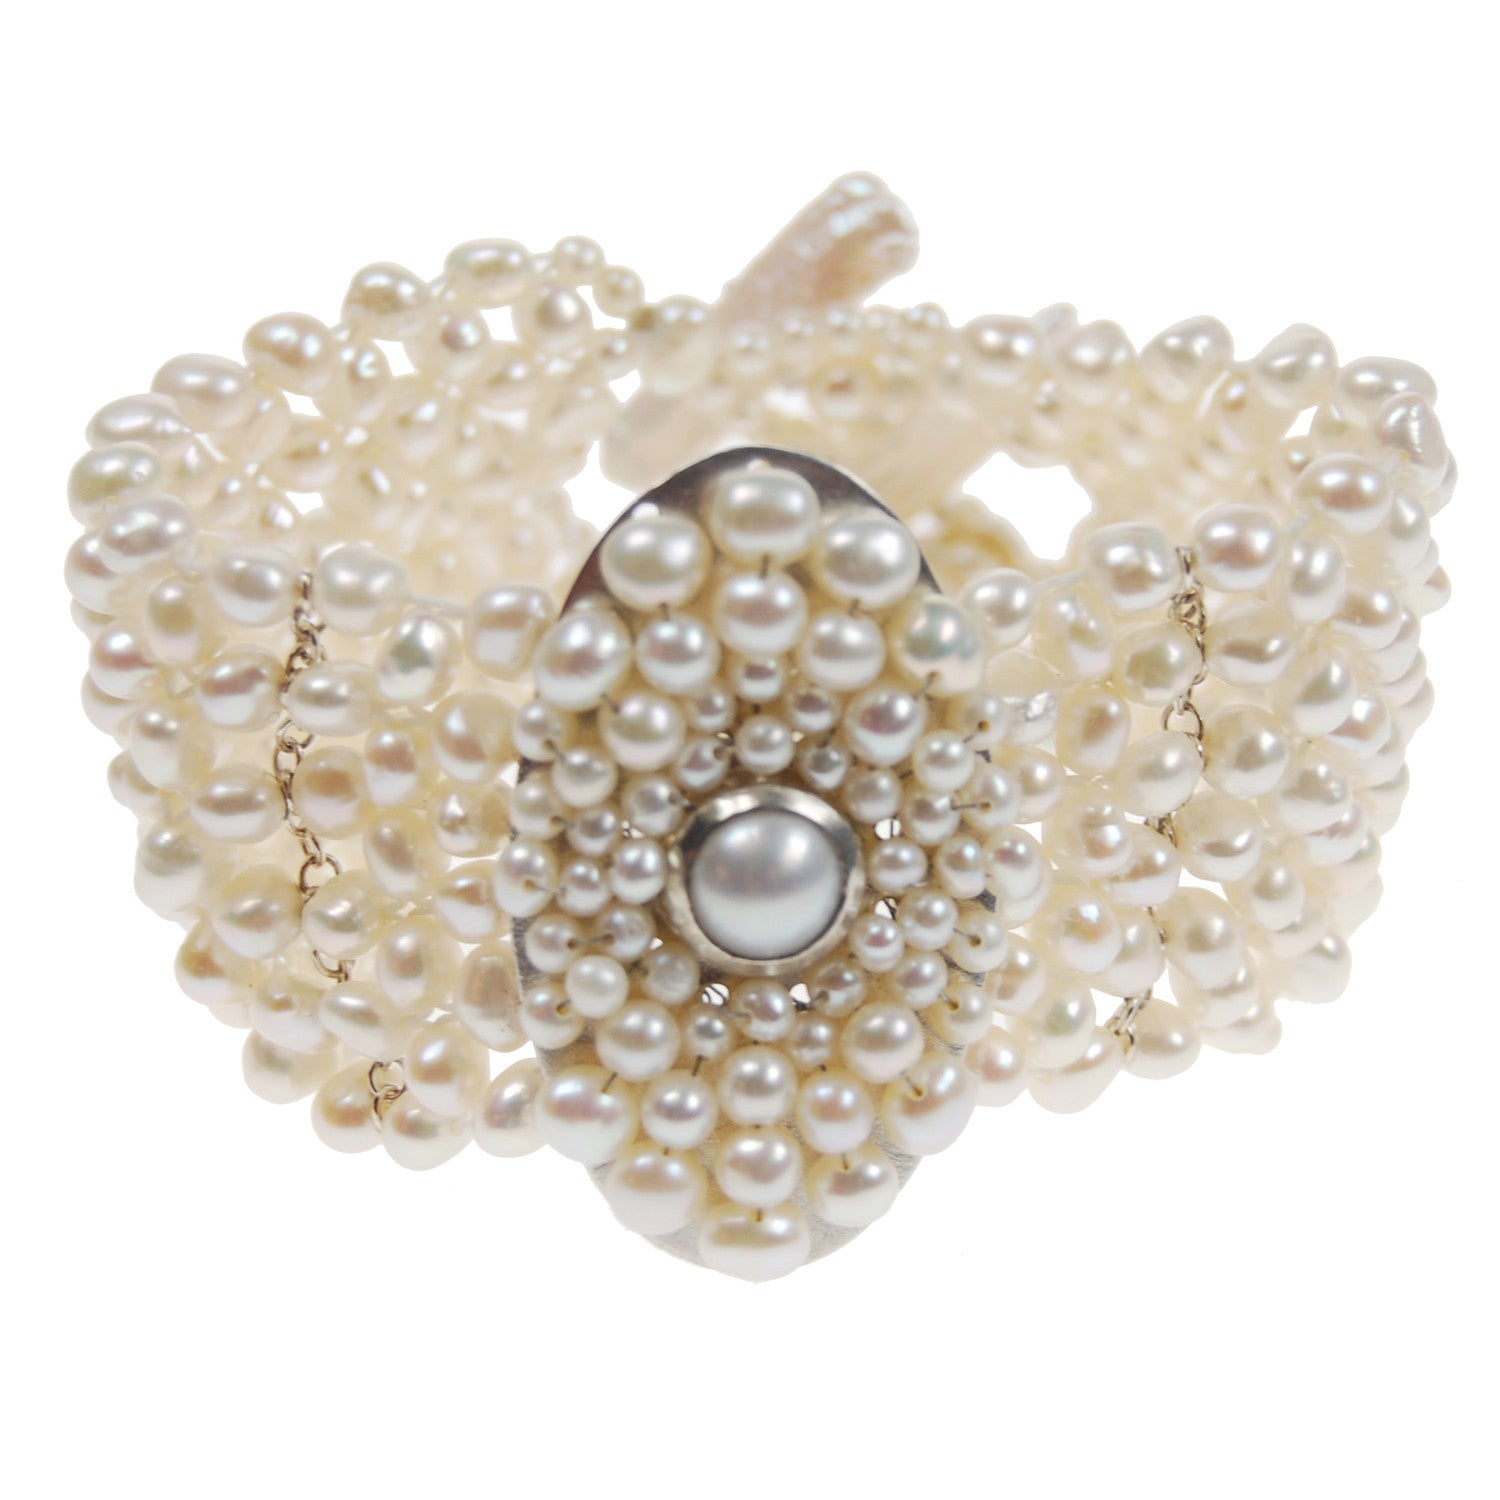 Pearl Bracelet with Oval Centerpiece